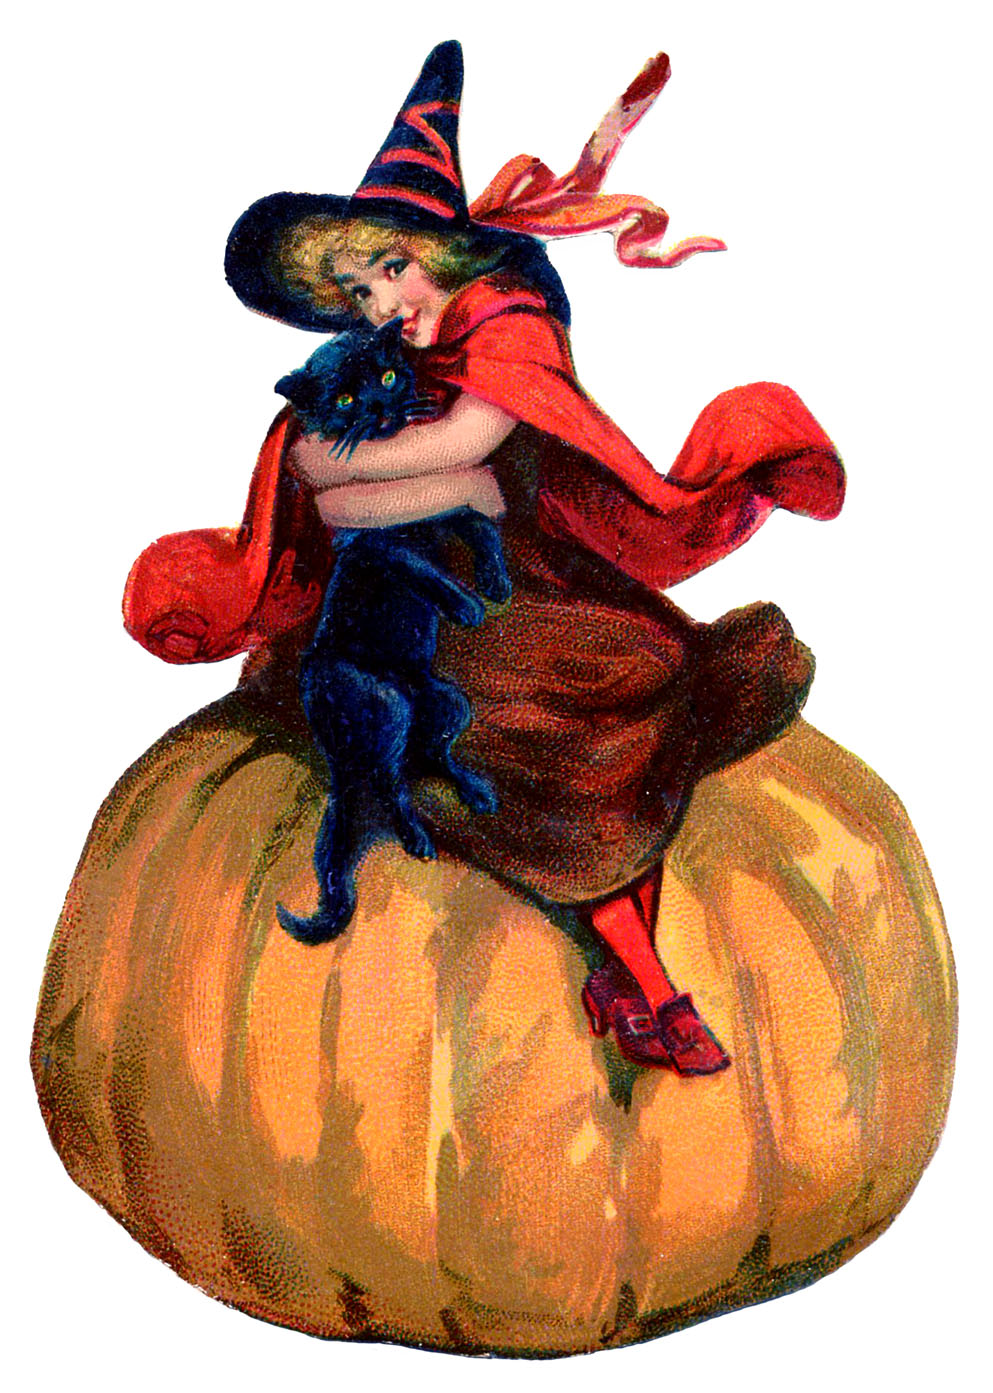 Vintage Halloween Image - Adorable Witch with Pumpkin ...